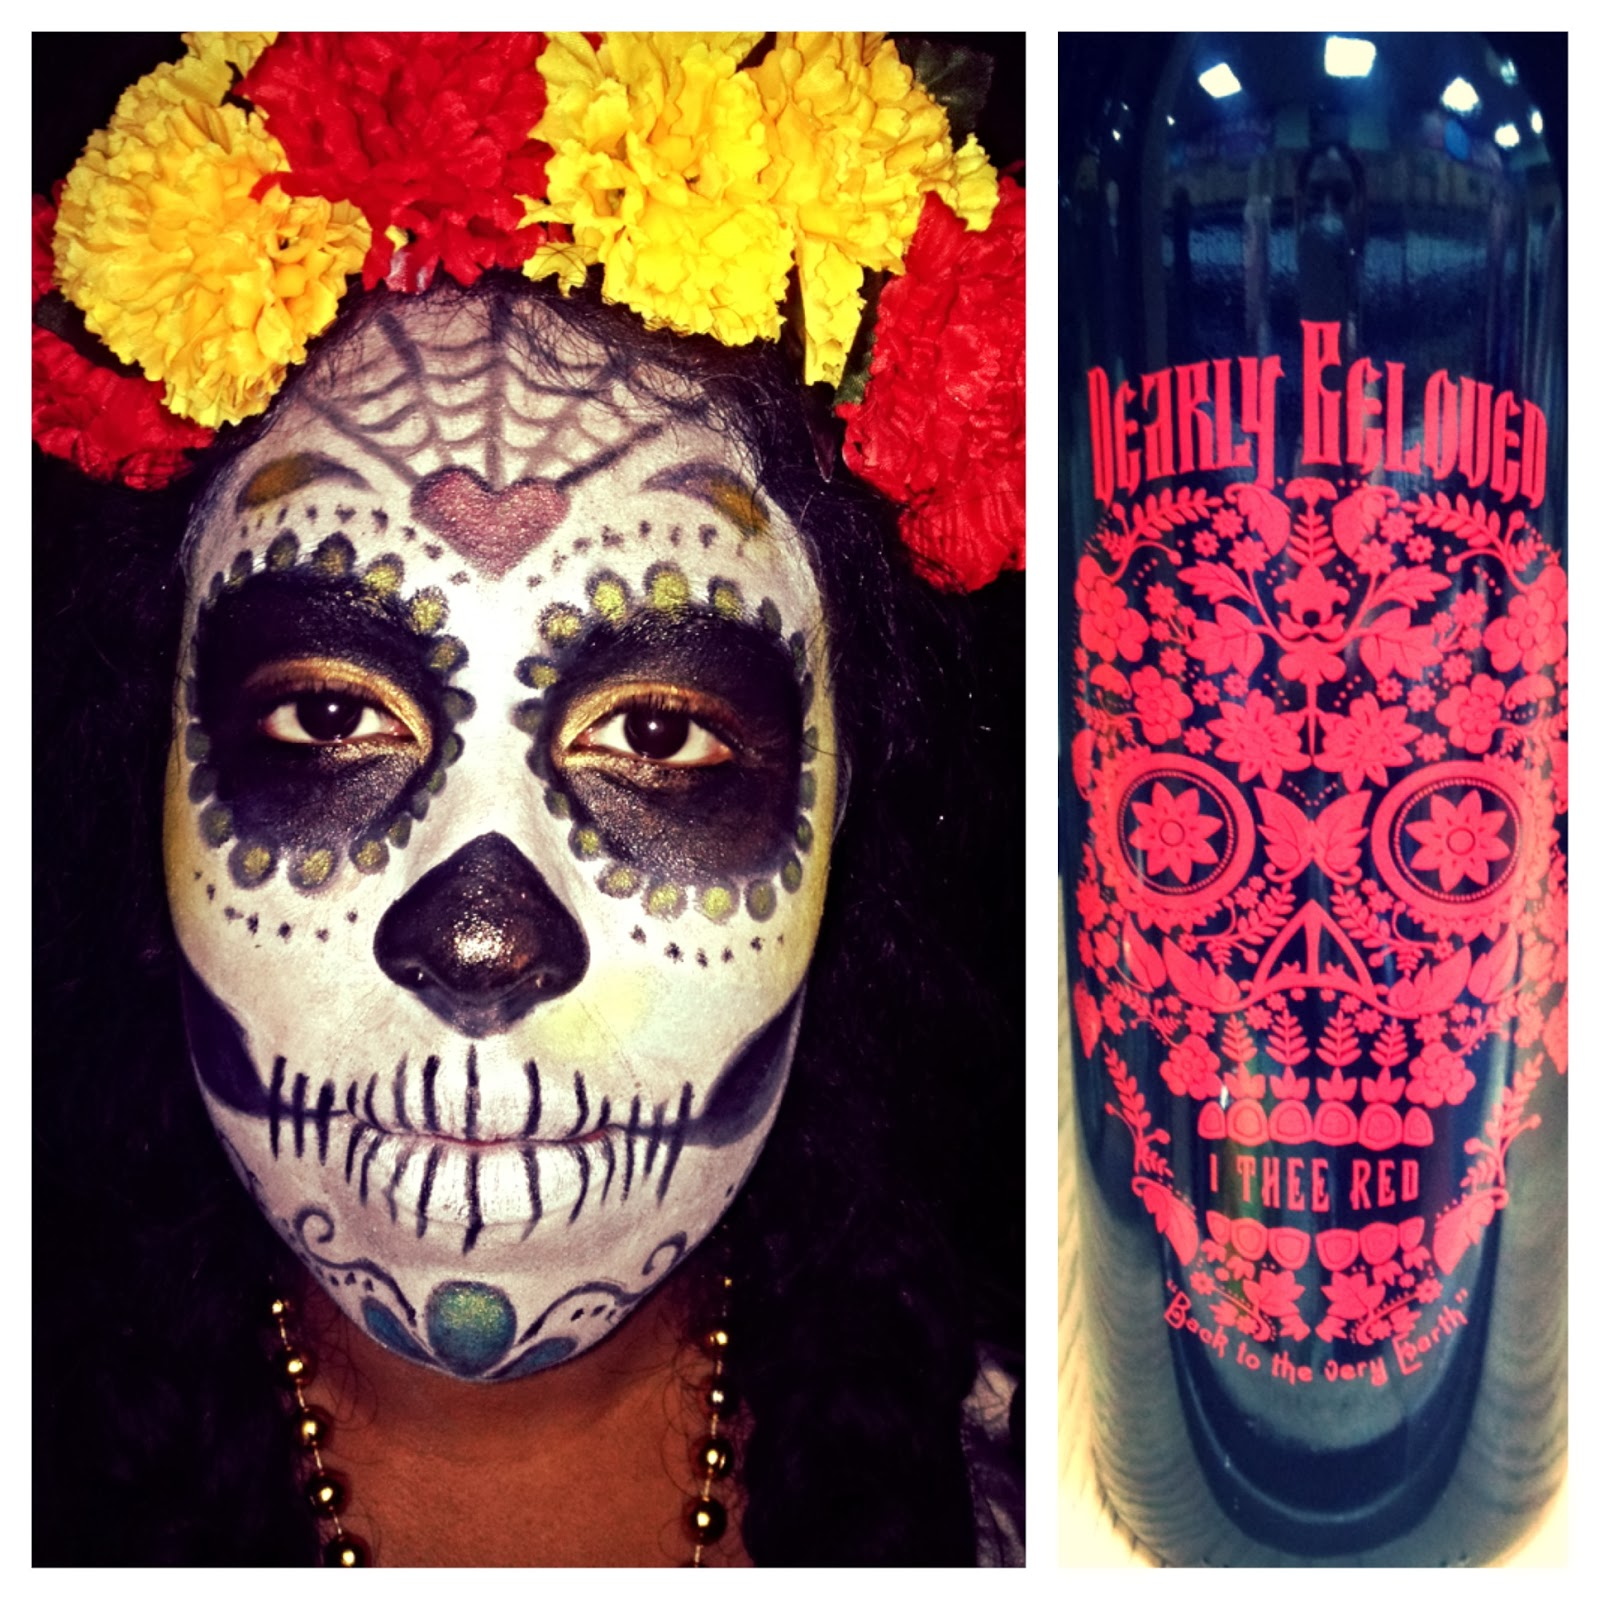 found this wine at trader joes wine shop on 14th st nyc - Halloween Store 14th Street Nyc